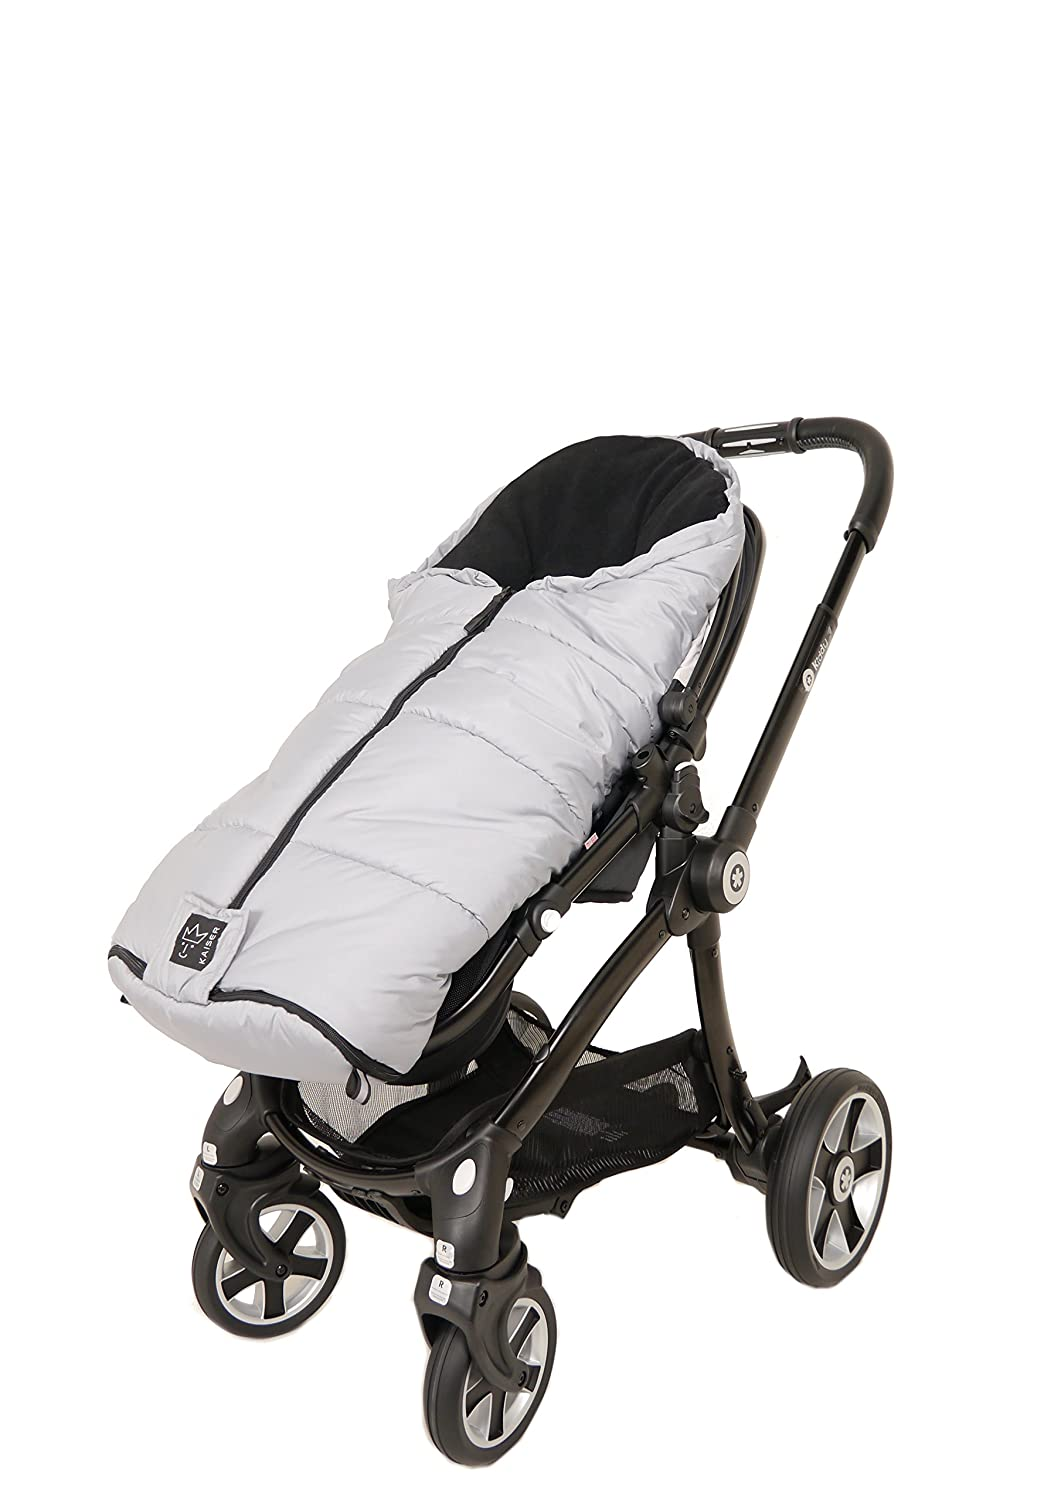 Kaiser Thermo Aktion Pushchair Foot Muff Baby